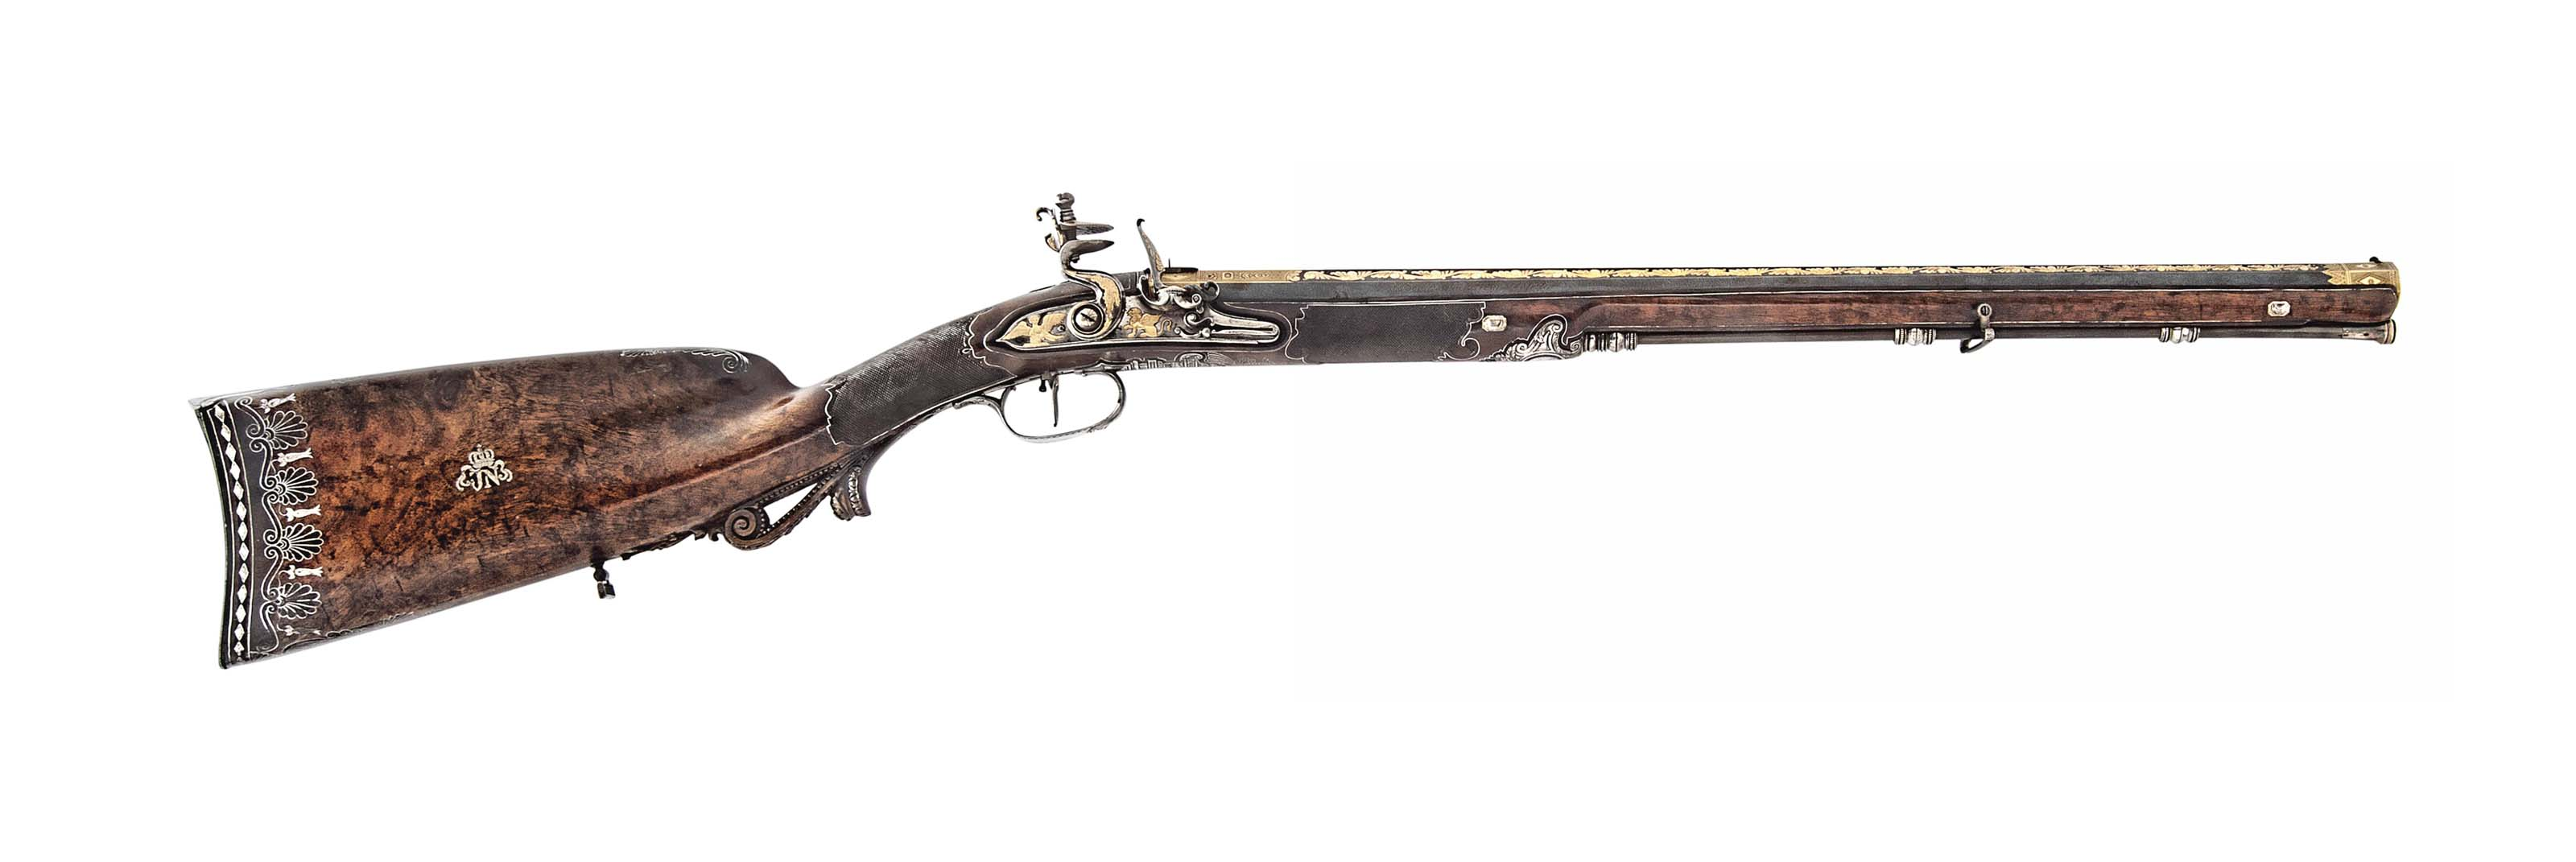 A MAGNIFICENT FRENCH FLINTLOCK SPORTING RIFLE BEARING THE MONOGRAM OF JEROME NAPOLEON, KING OF WESTPHALIA